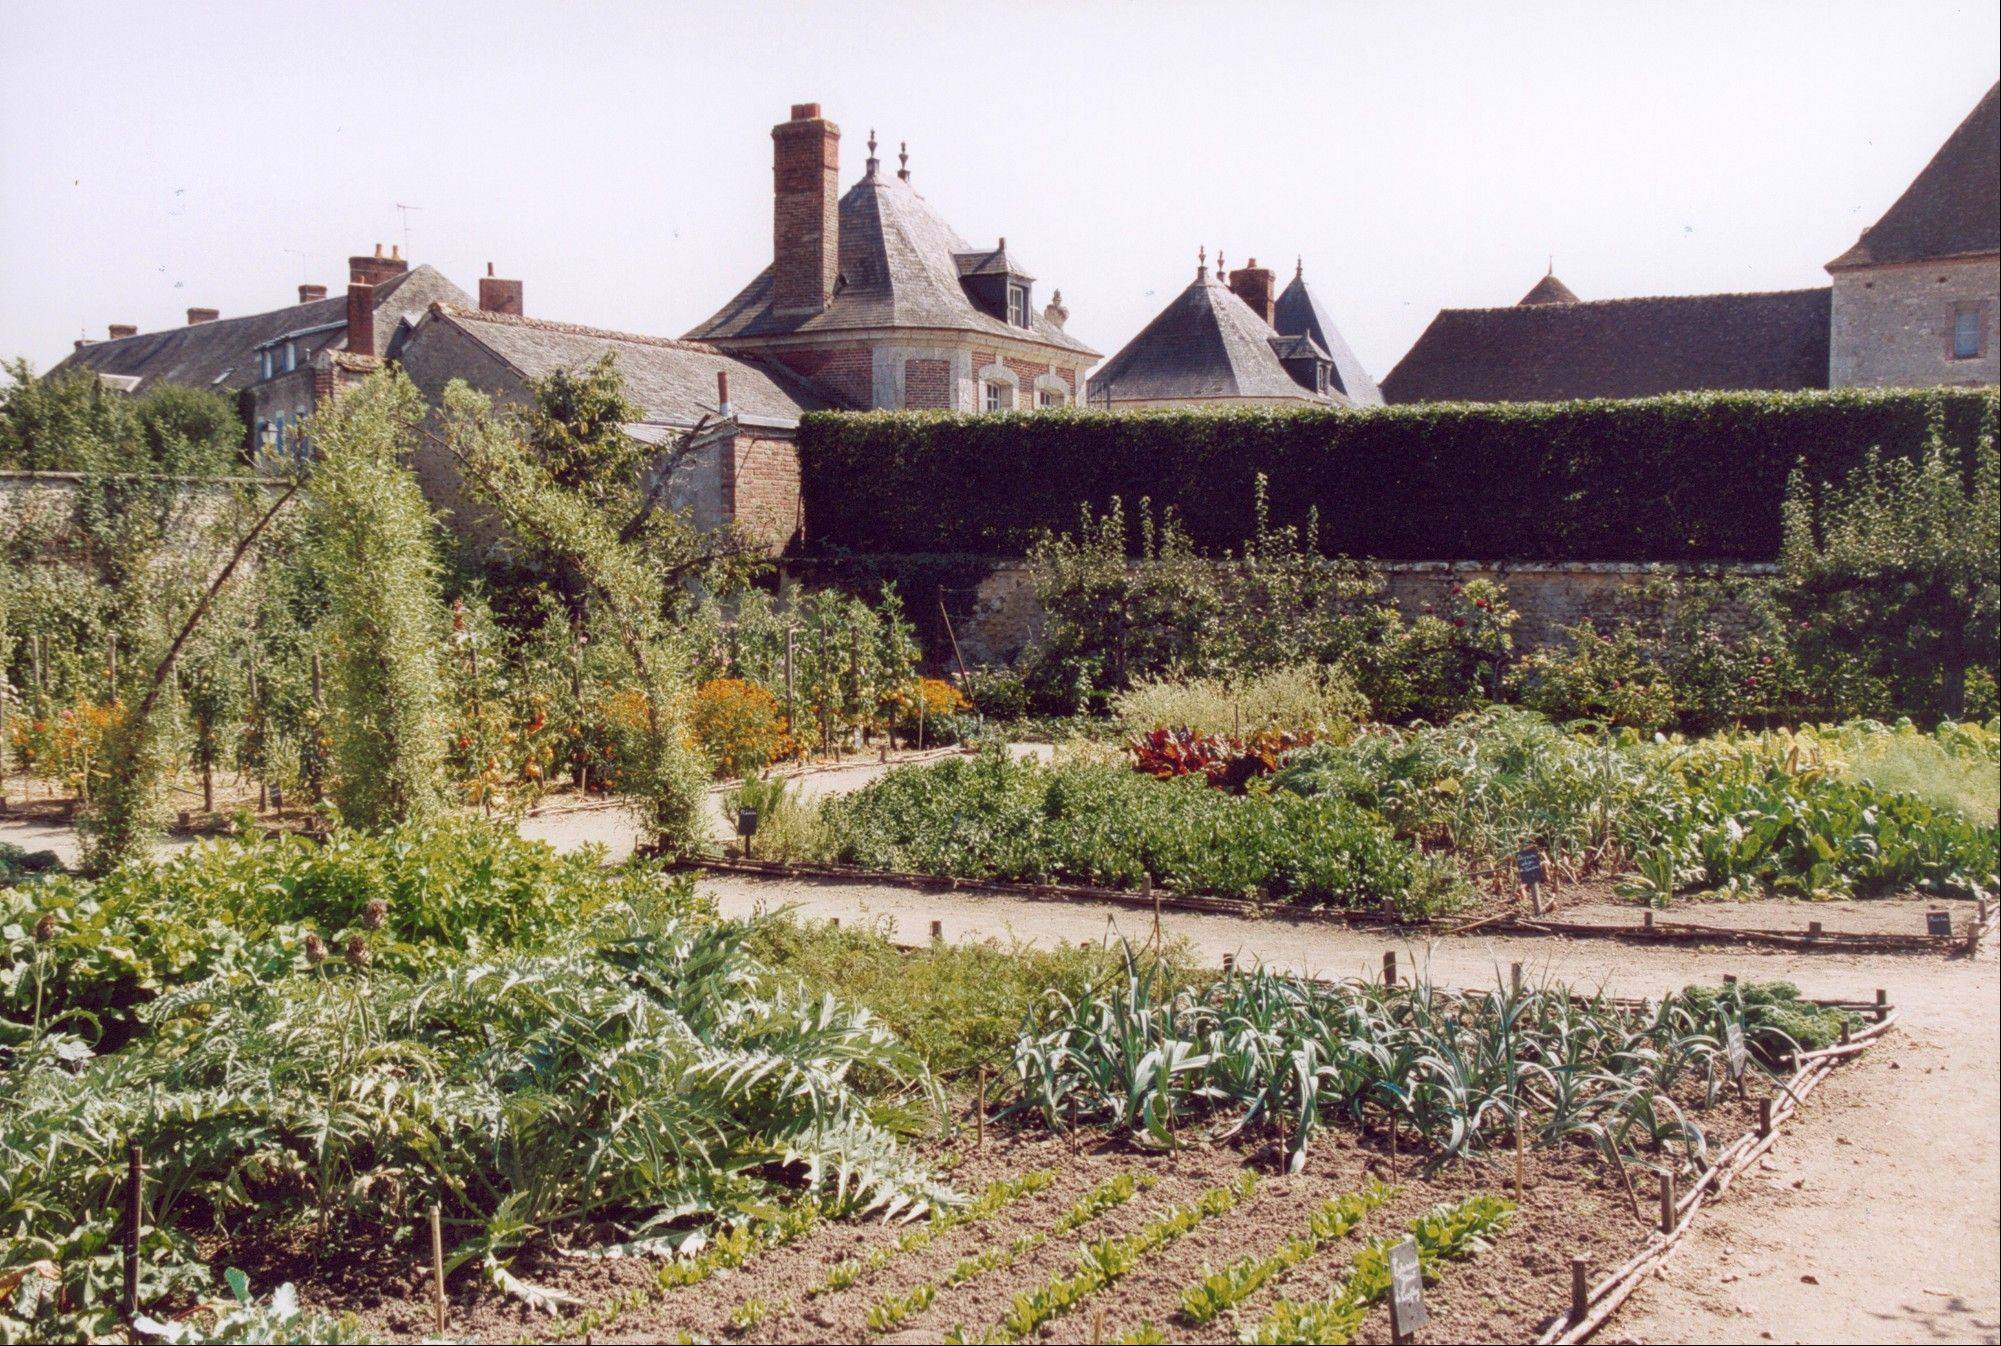 This is a traditional French four-square potager with fruit trees within a walled compound.